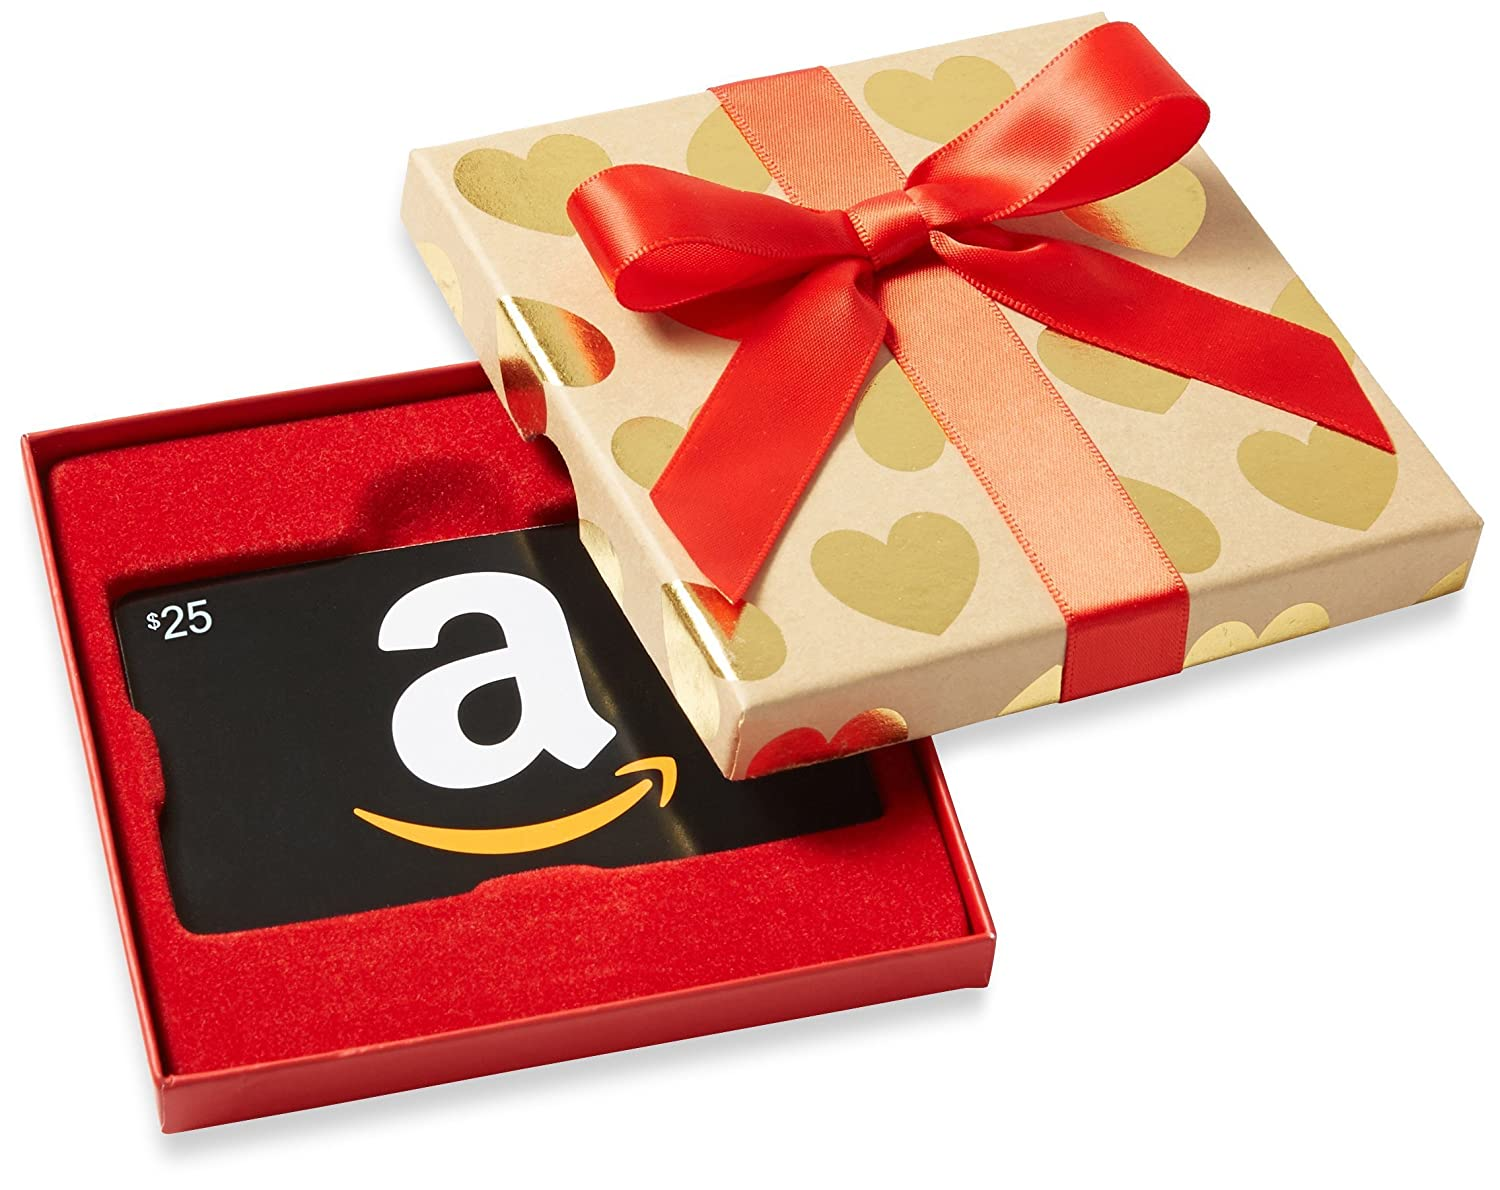 Amazon.ca Gift Card in a Gold Hearts Box (Classic Black Card Design) Amazon.com.ca Inc.